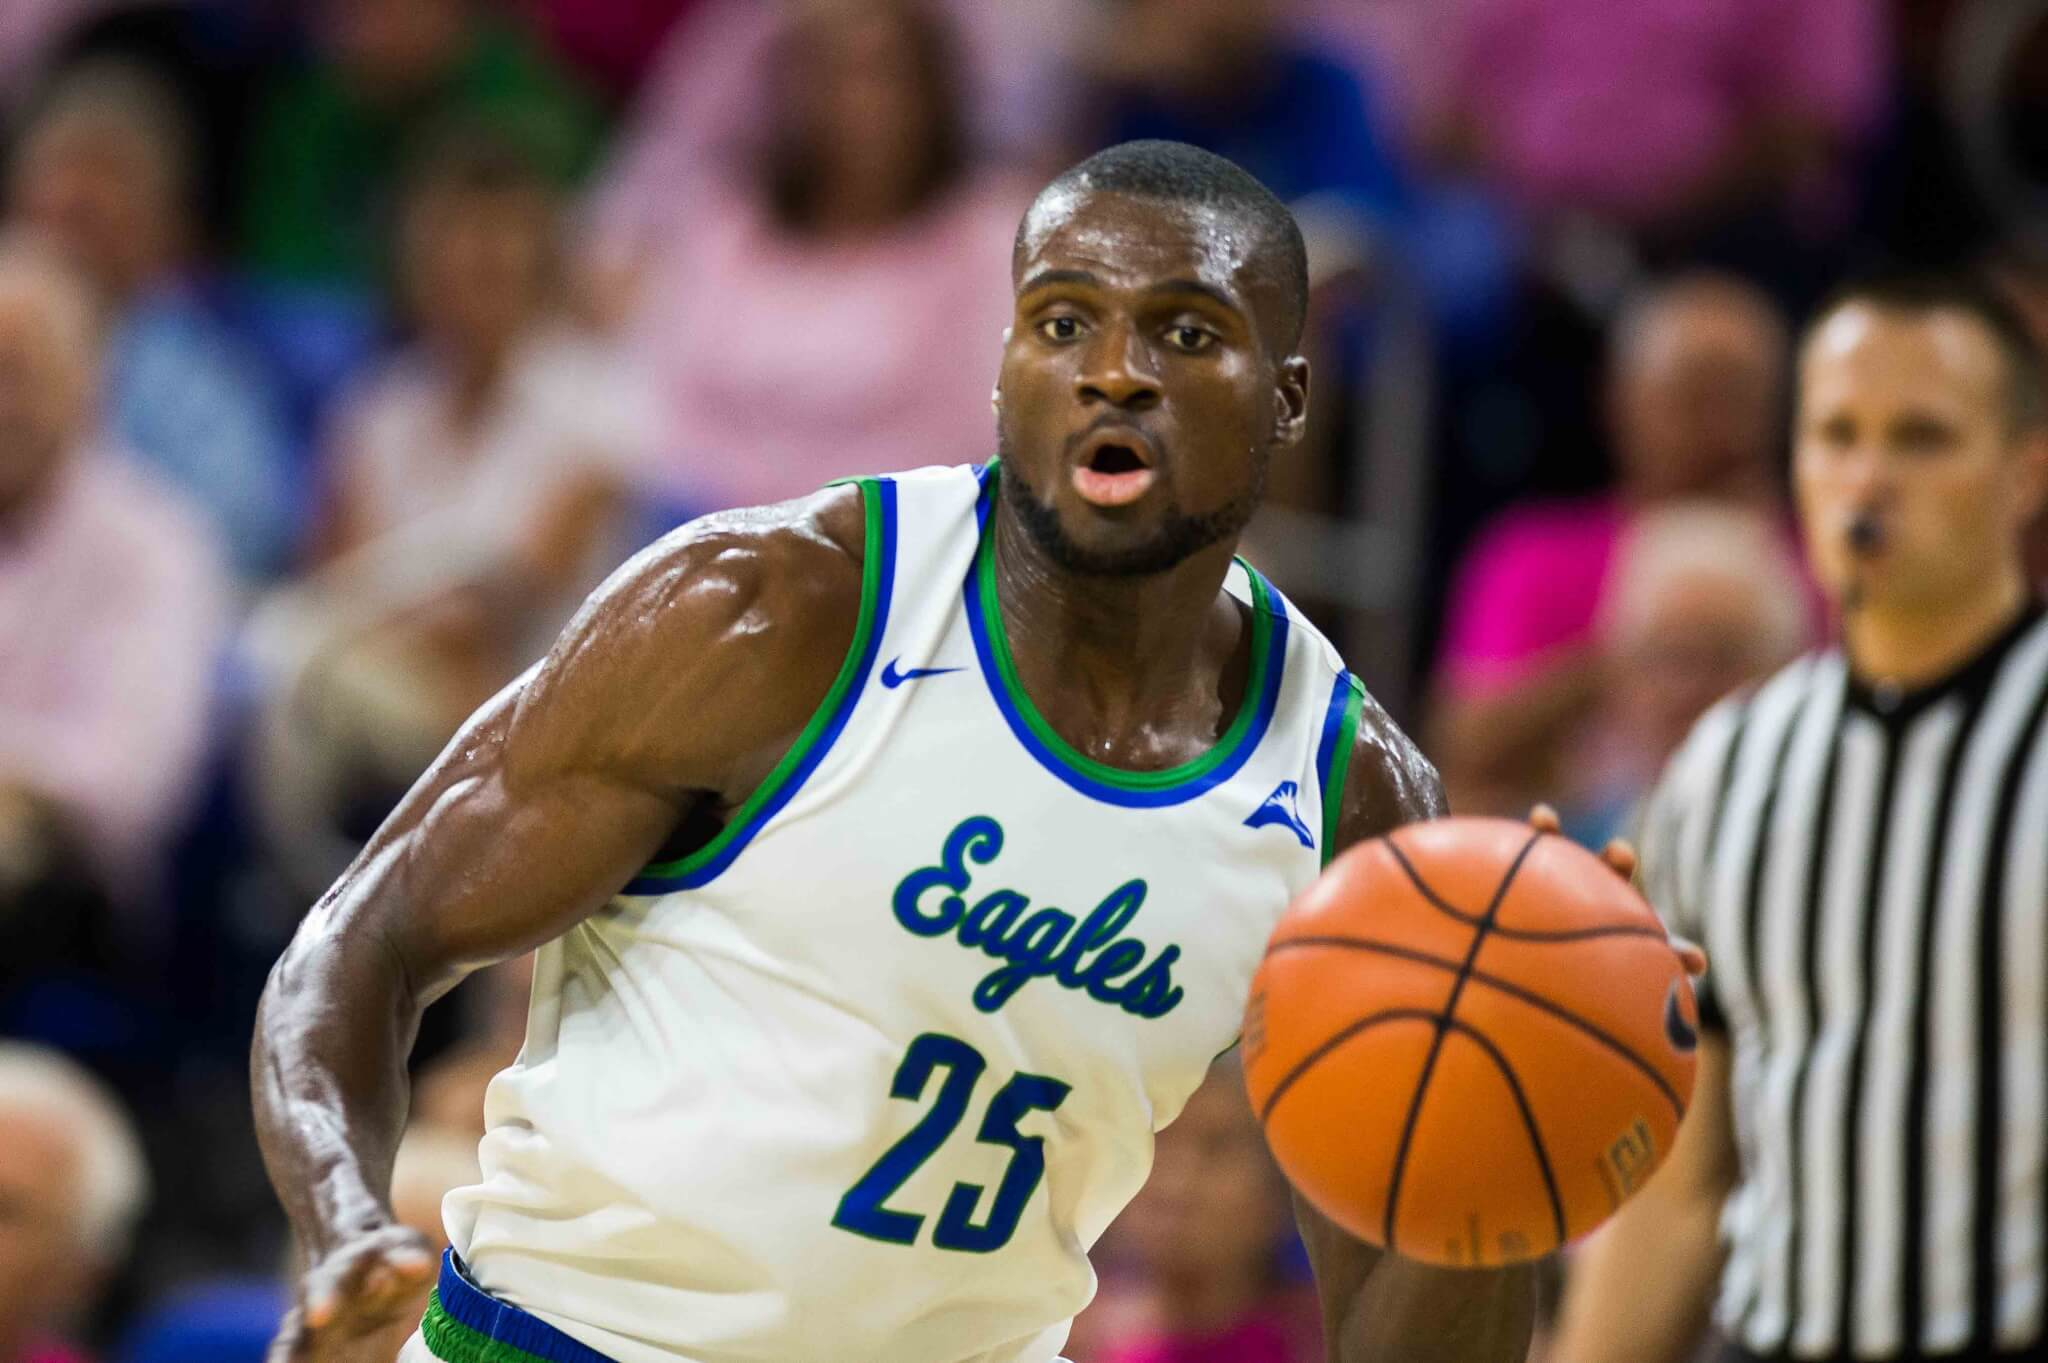 Marc-Eddy Norelia reaches 1,000 career points despite FGCU's loss to Lipscomb